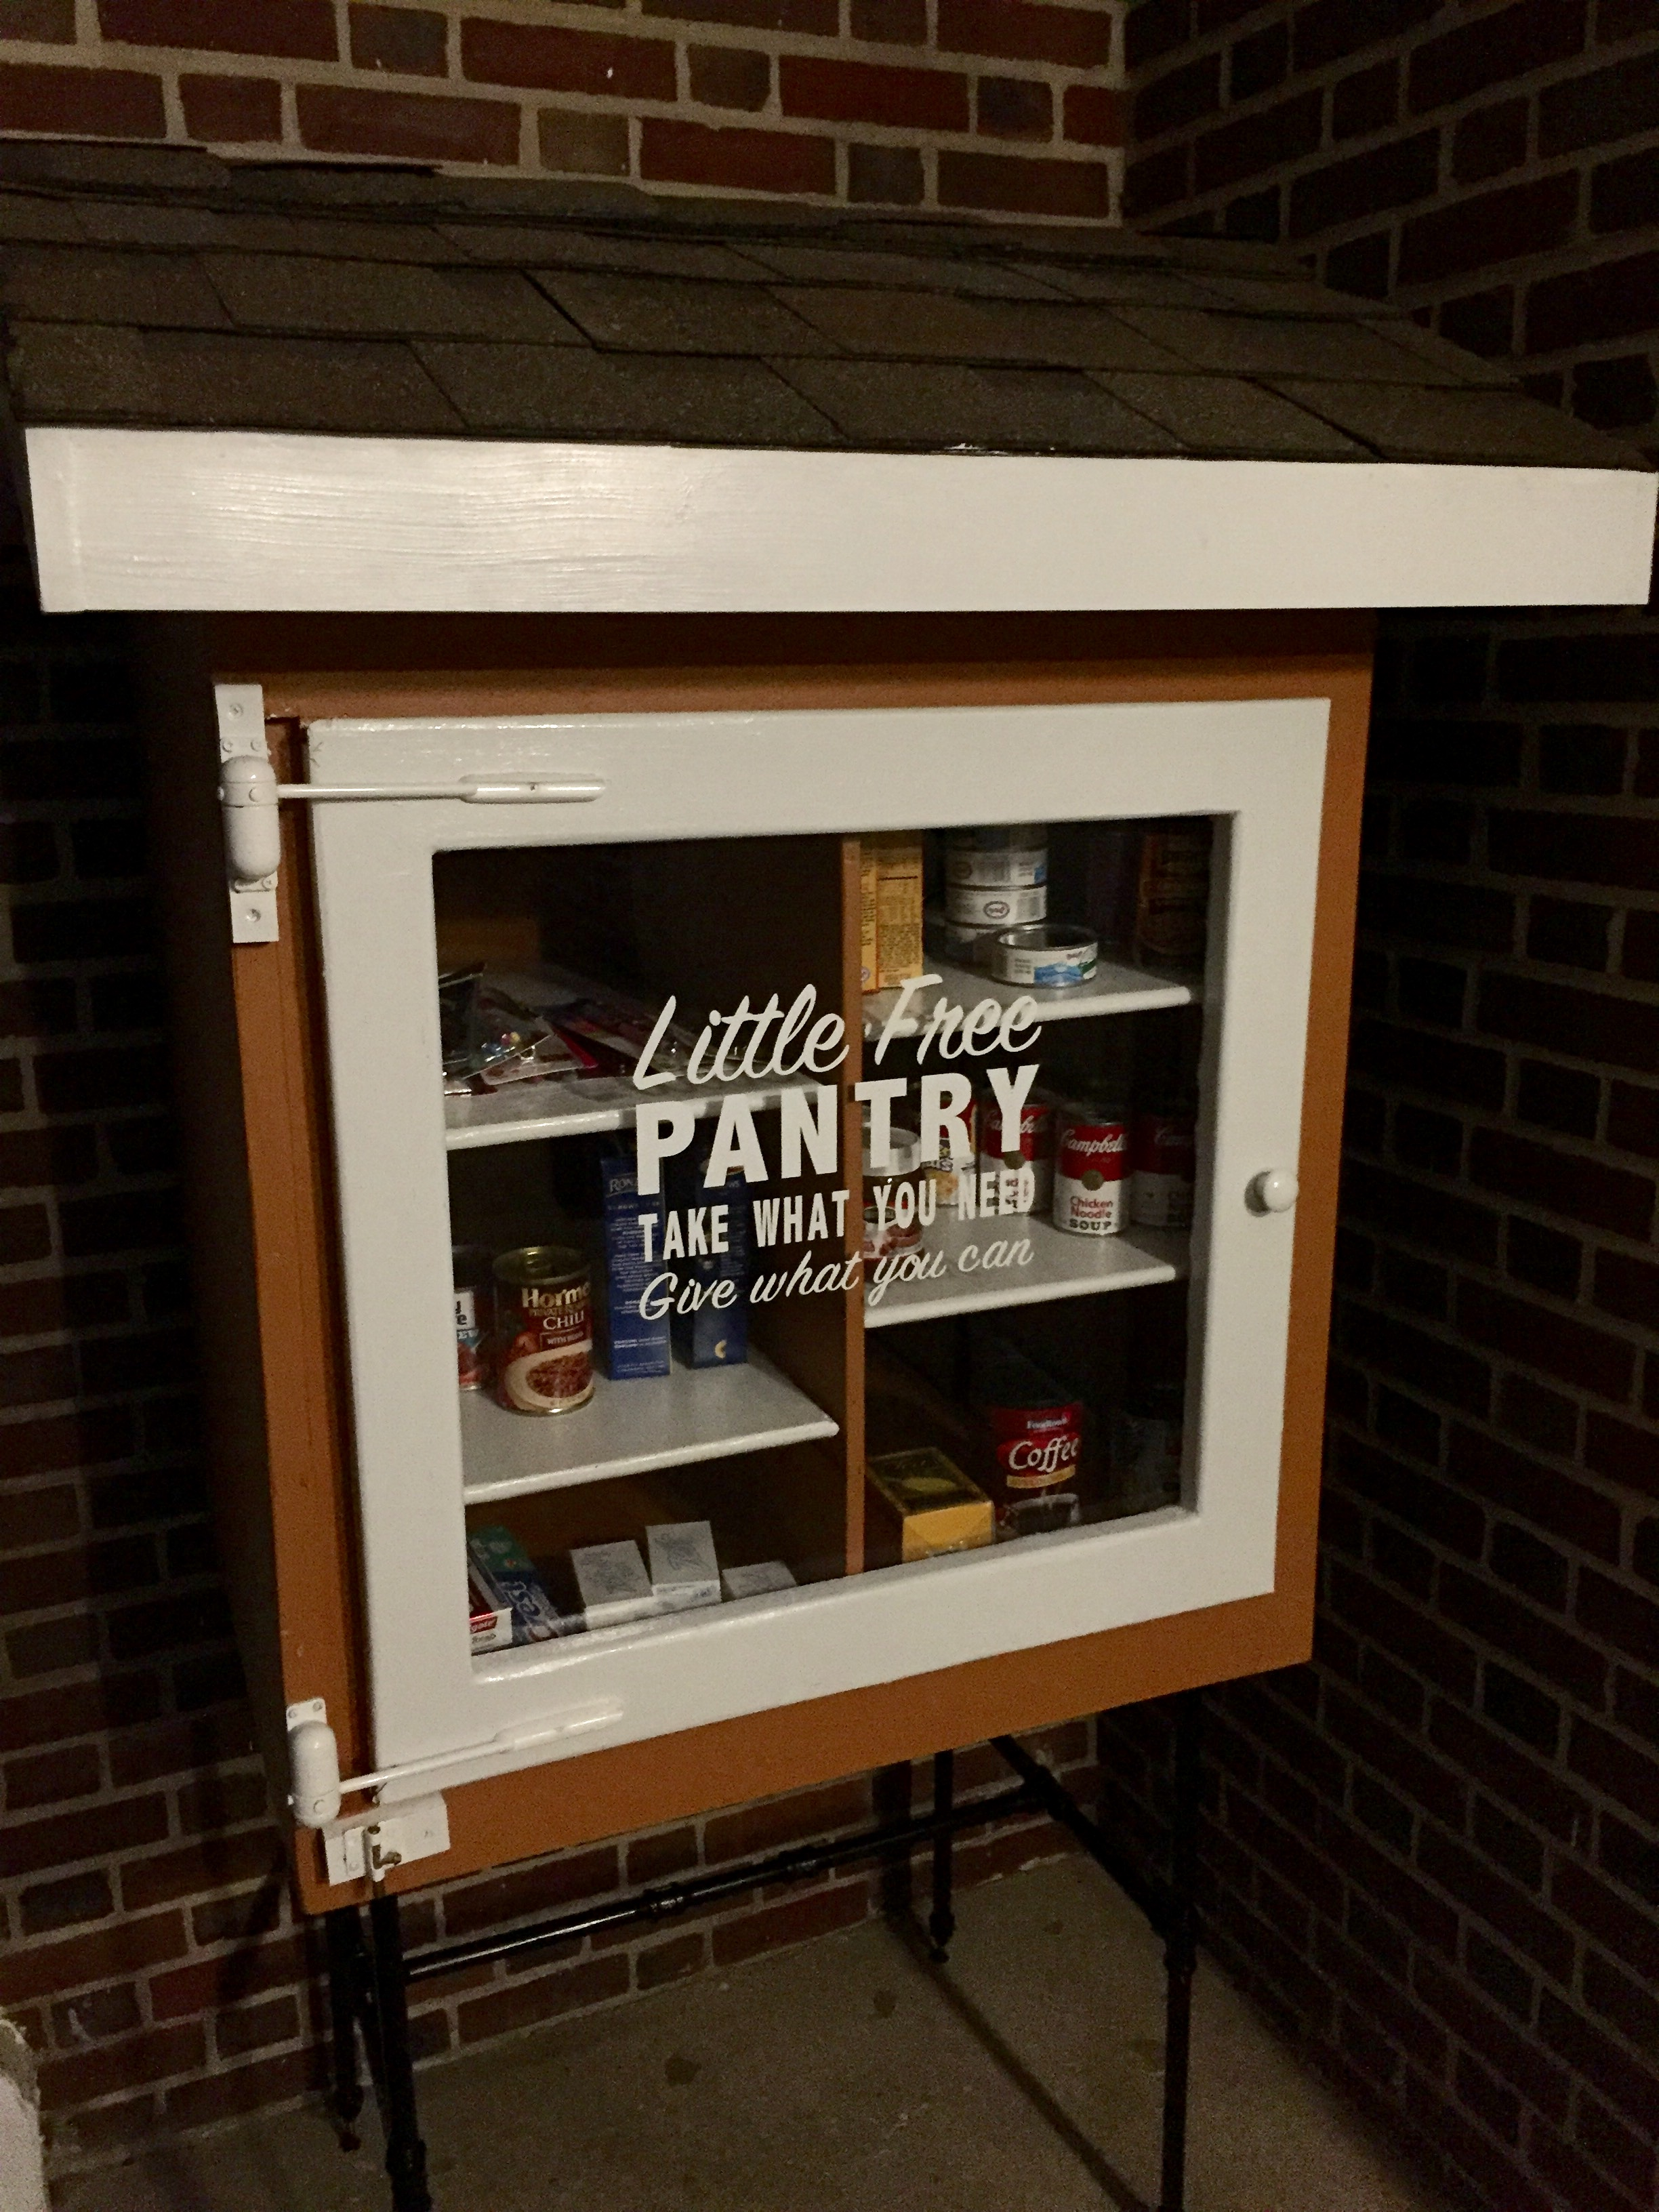 United Methodist Church Red Bank Little Free Pantry Photo 1